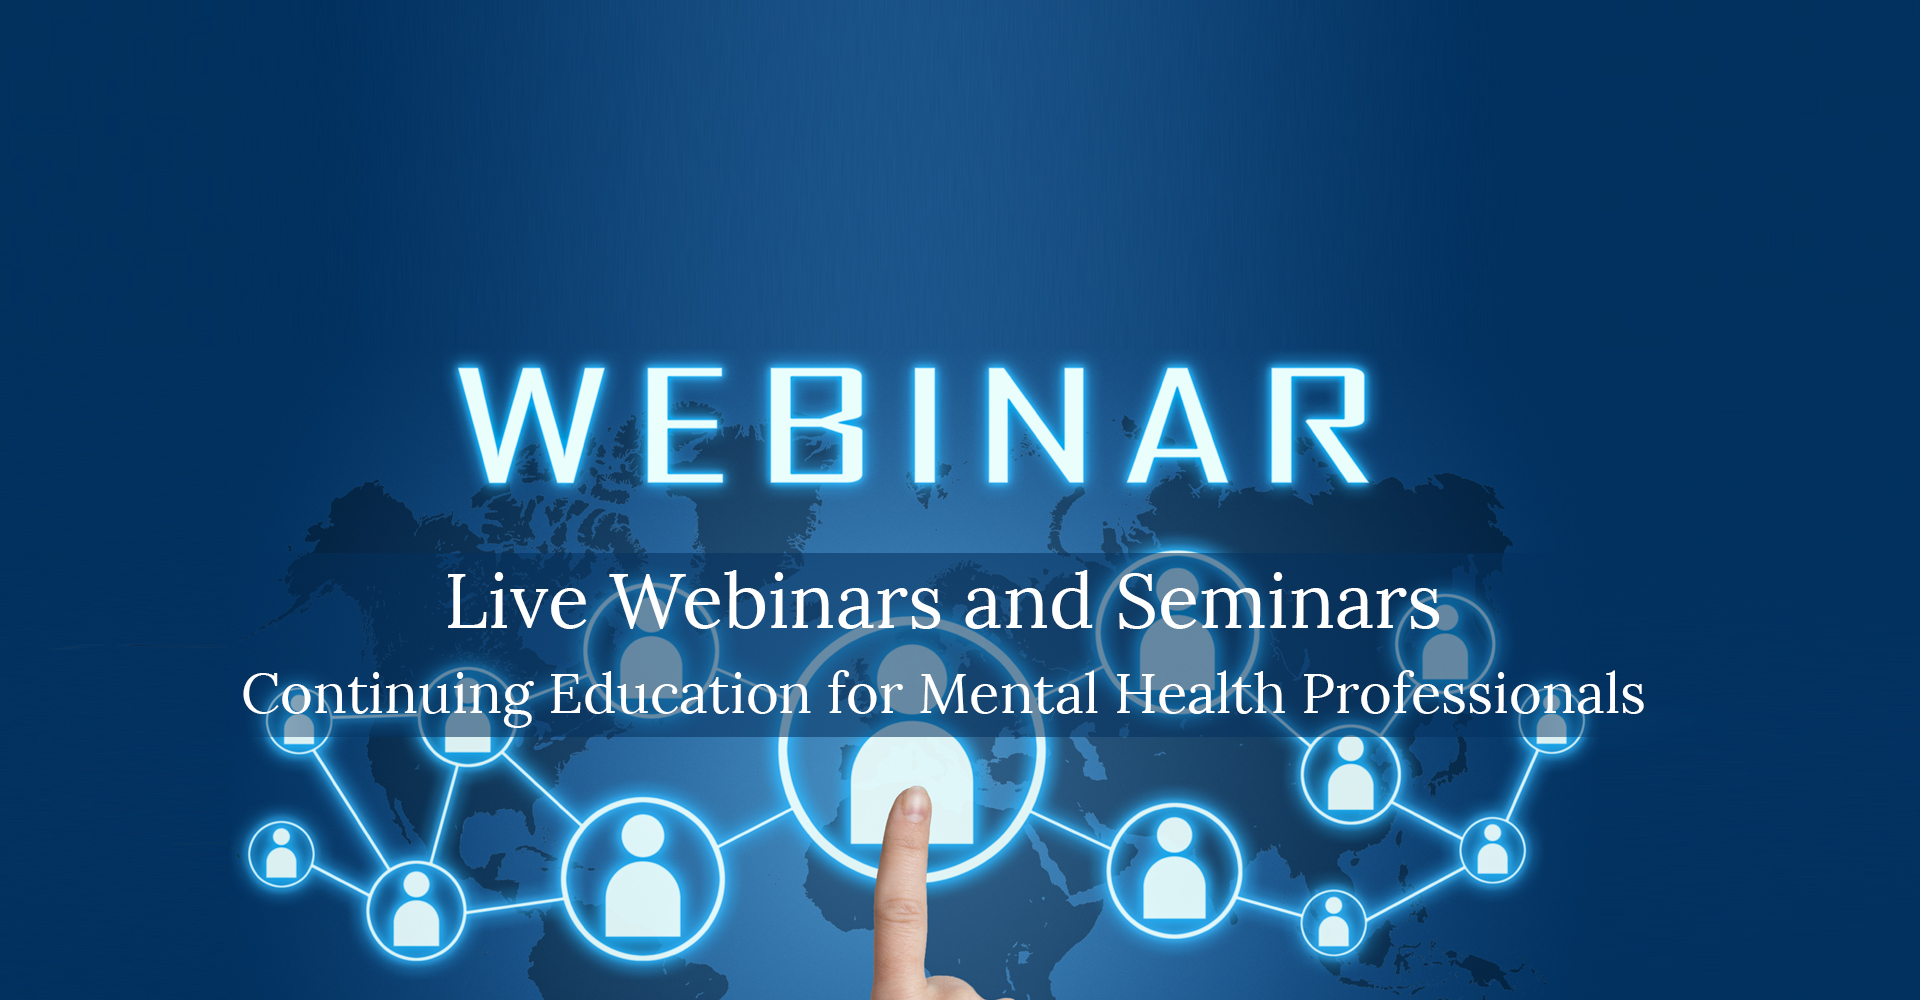 Webinars and Online Continuing Education for Counselors